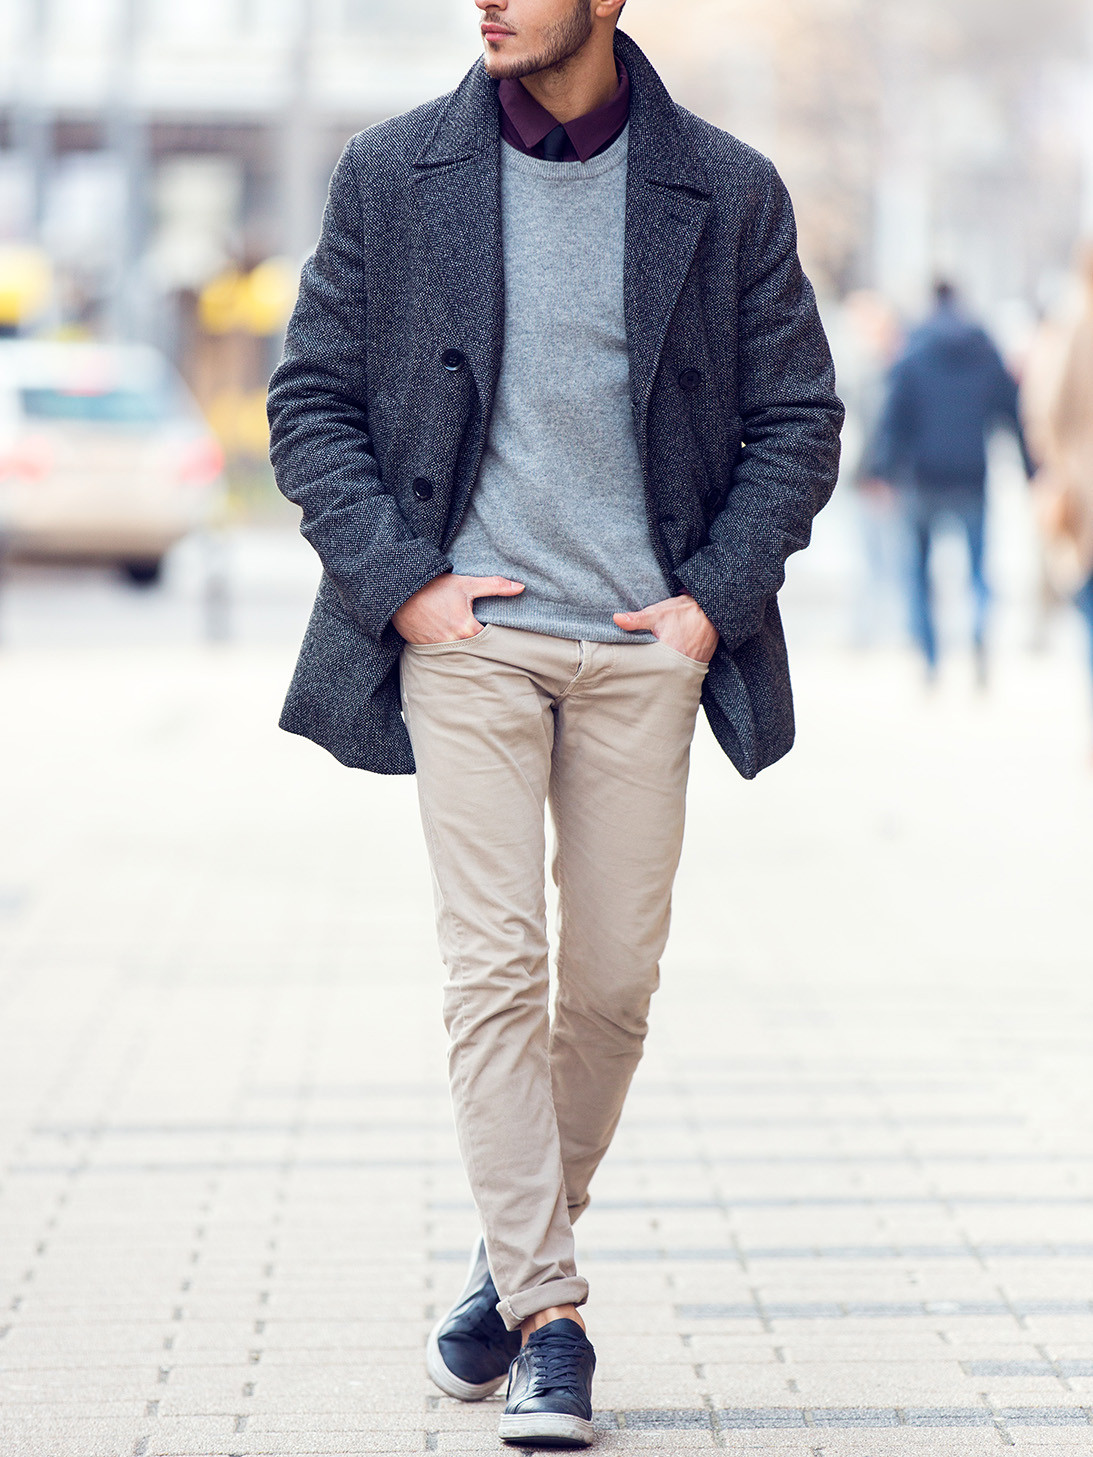 Men's outfit idea for 2021 with navy pea coat, grey plain crew neck knitted jumper, navy plain casual shirt, stone chinos, navy everyday trainers. Suitable for autumn and winter.